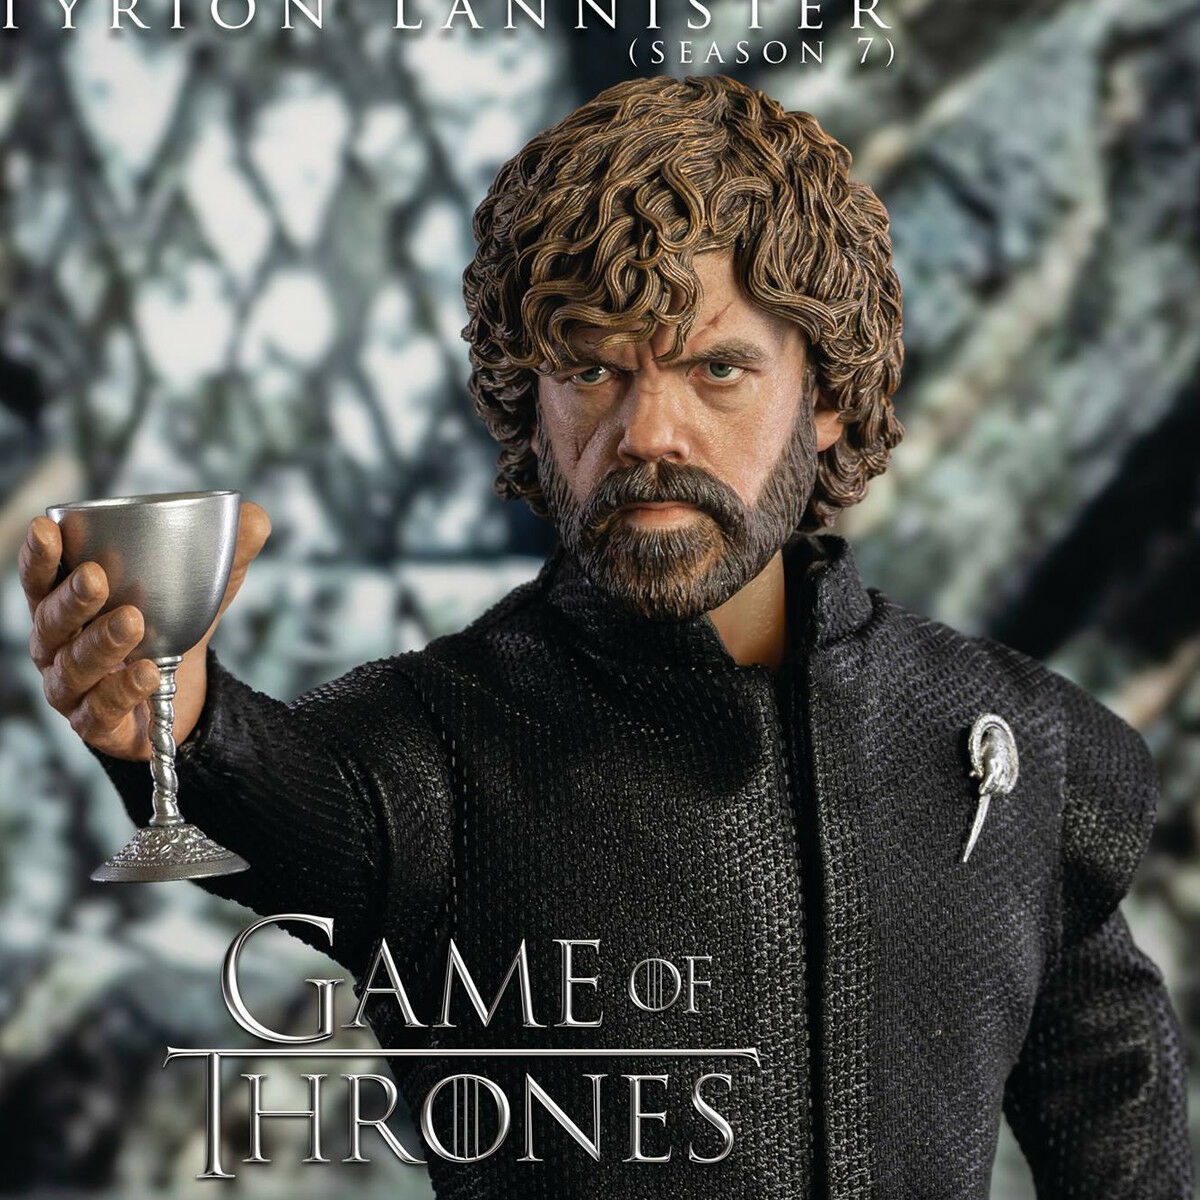 ThreeZero 1/6 3Z0097 Tyrion Lannister Game of Thrones Figure Collectible Deluxe